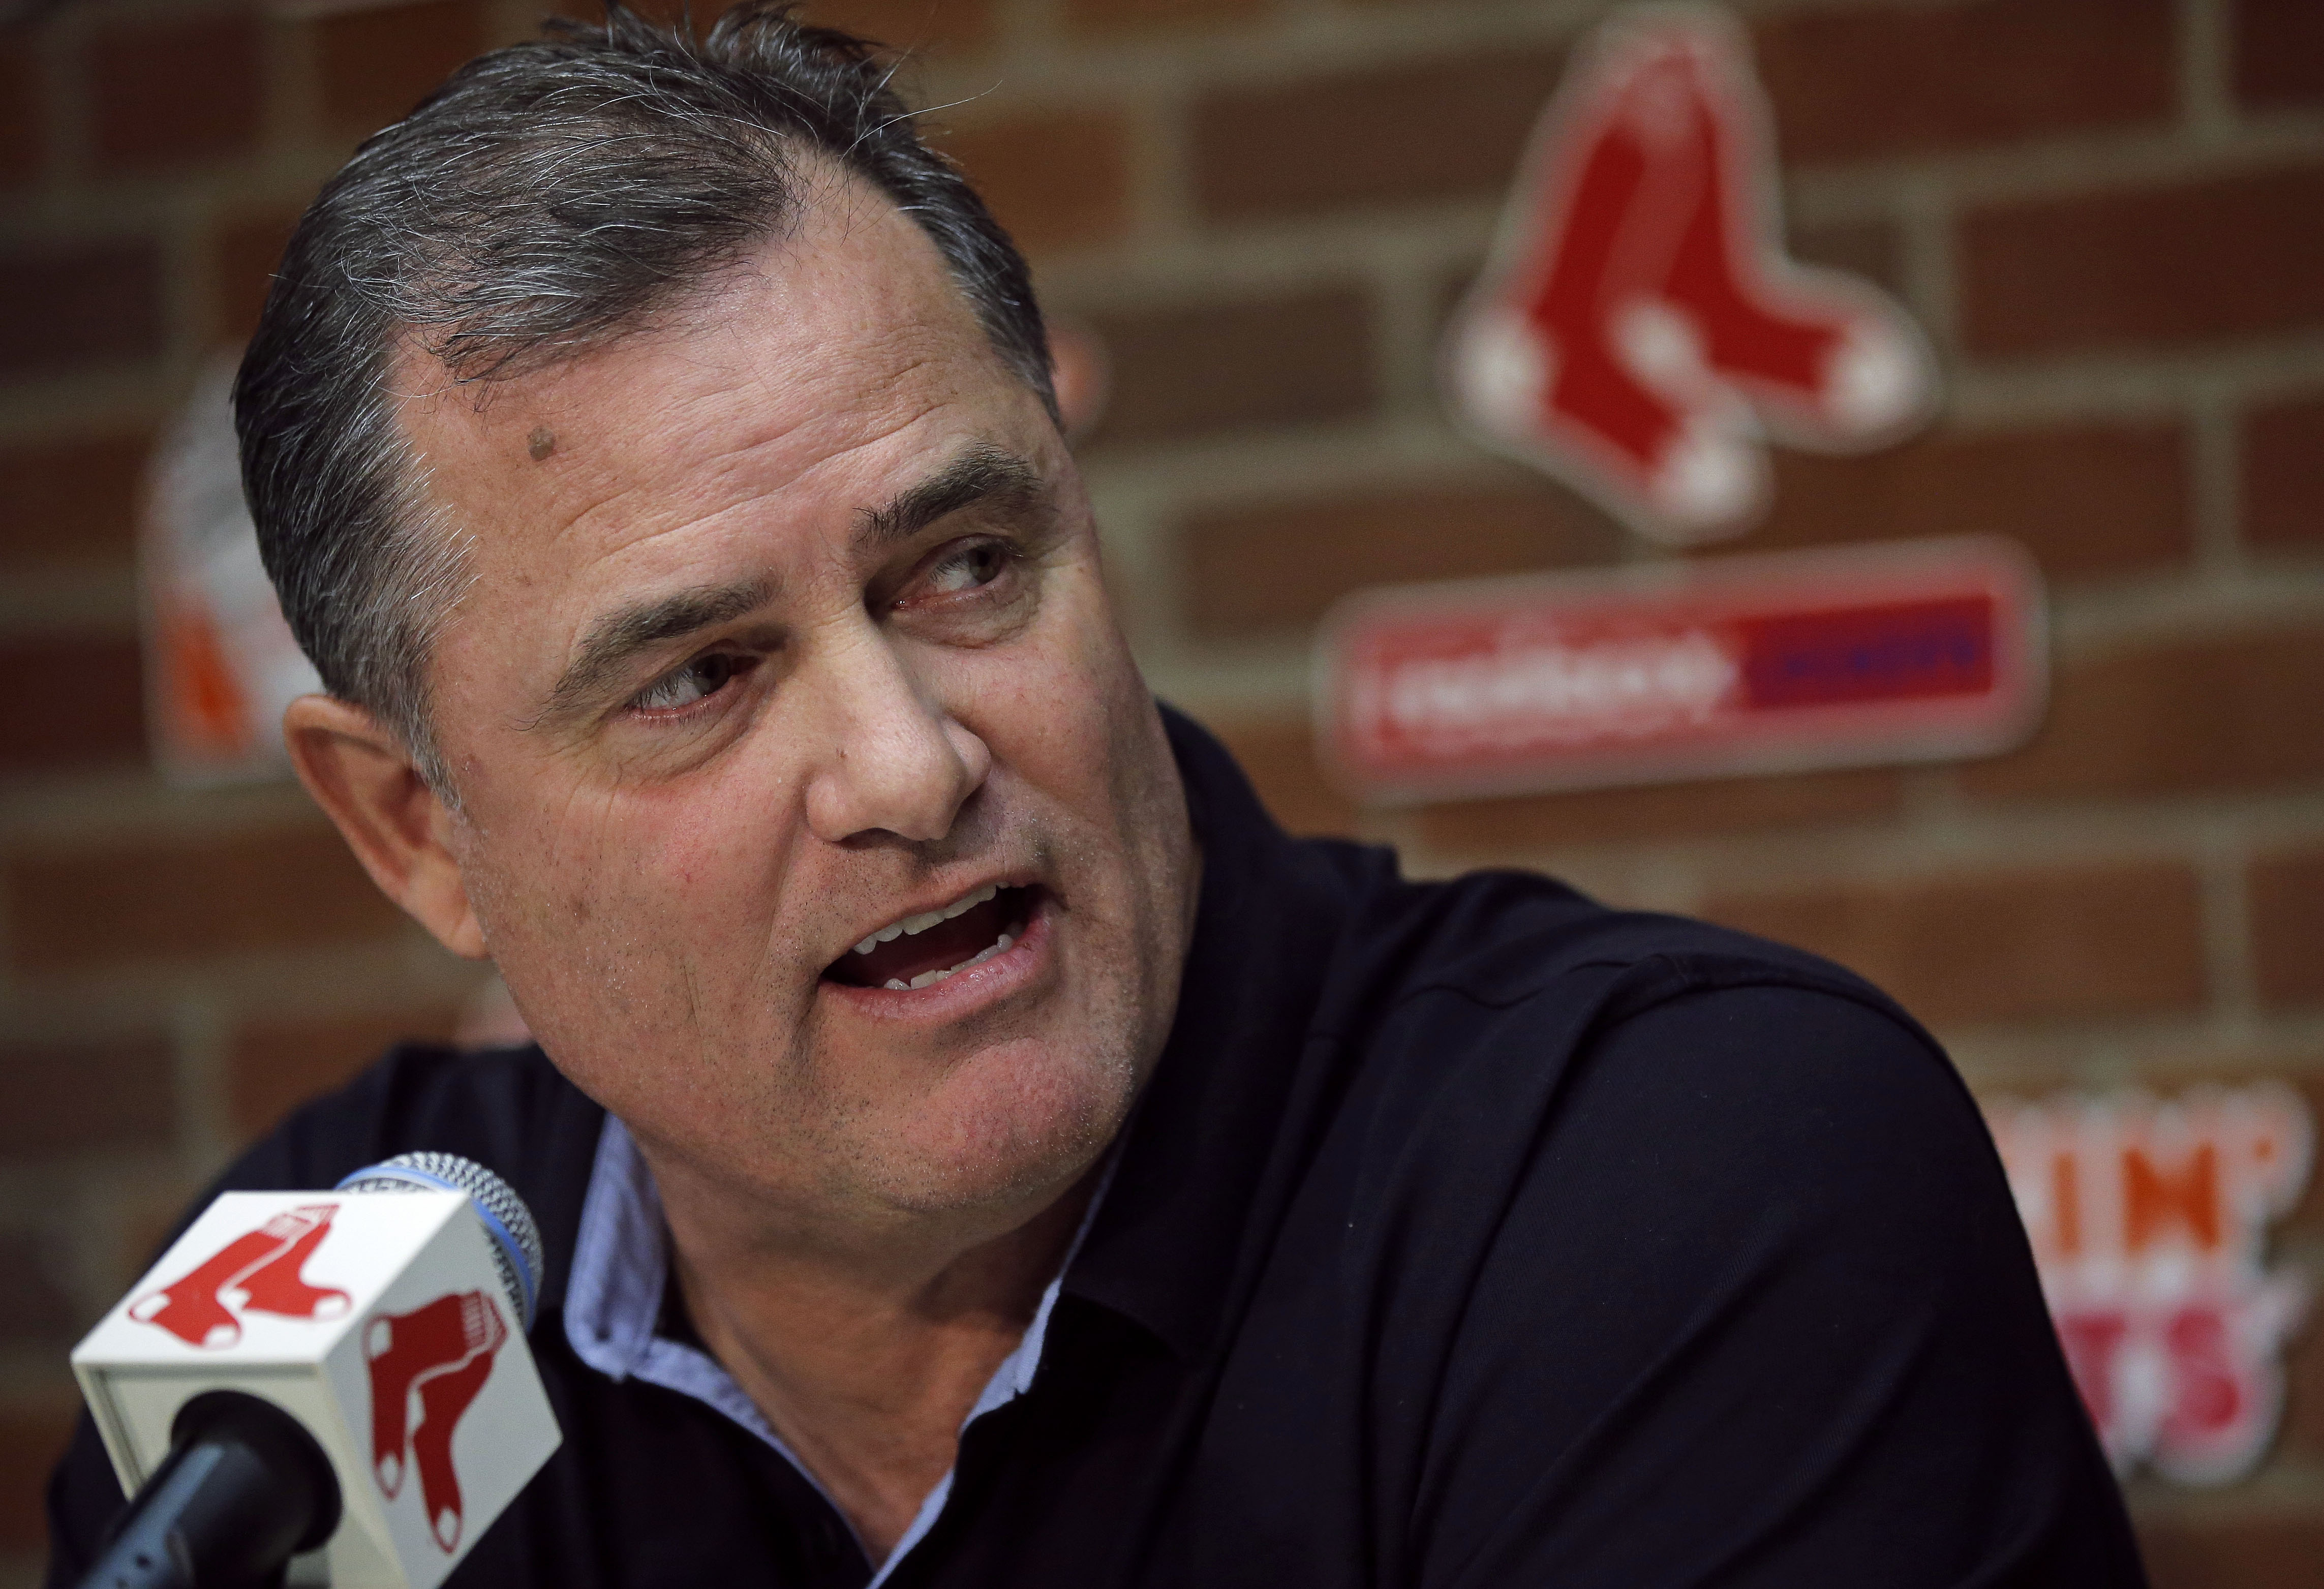 Boston Red Sox manager John Farrell answers a question during a news conference at Fenway Park, Tuesday, Oct. 11, 2016, in Boston. The Indians knocked the Red Sox out of the postseason, completing a three-game American League Division Series sweep. (AP Ph